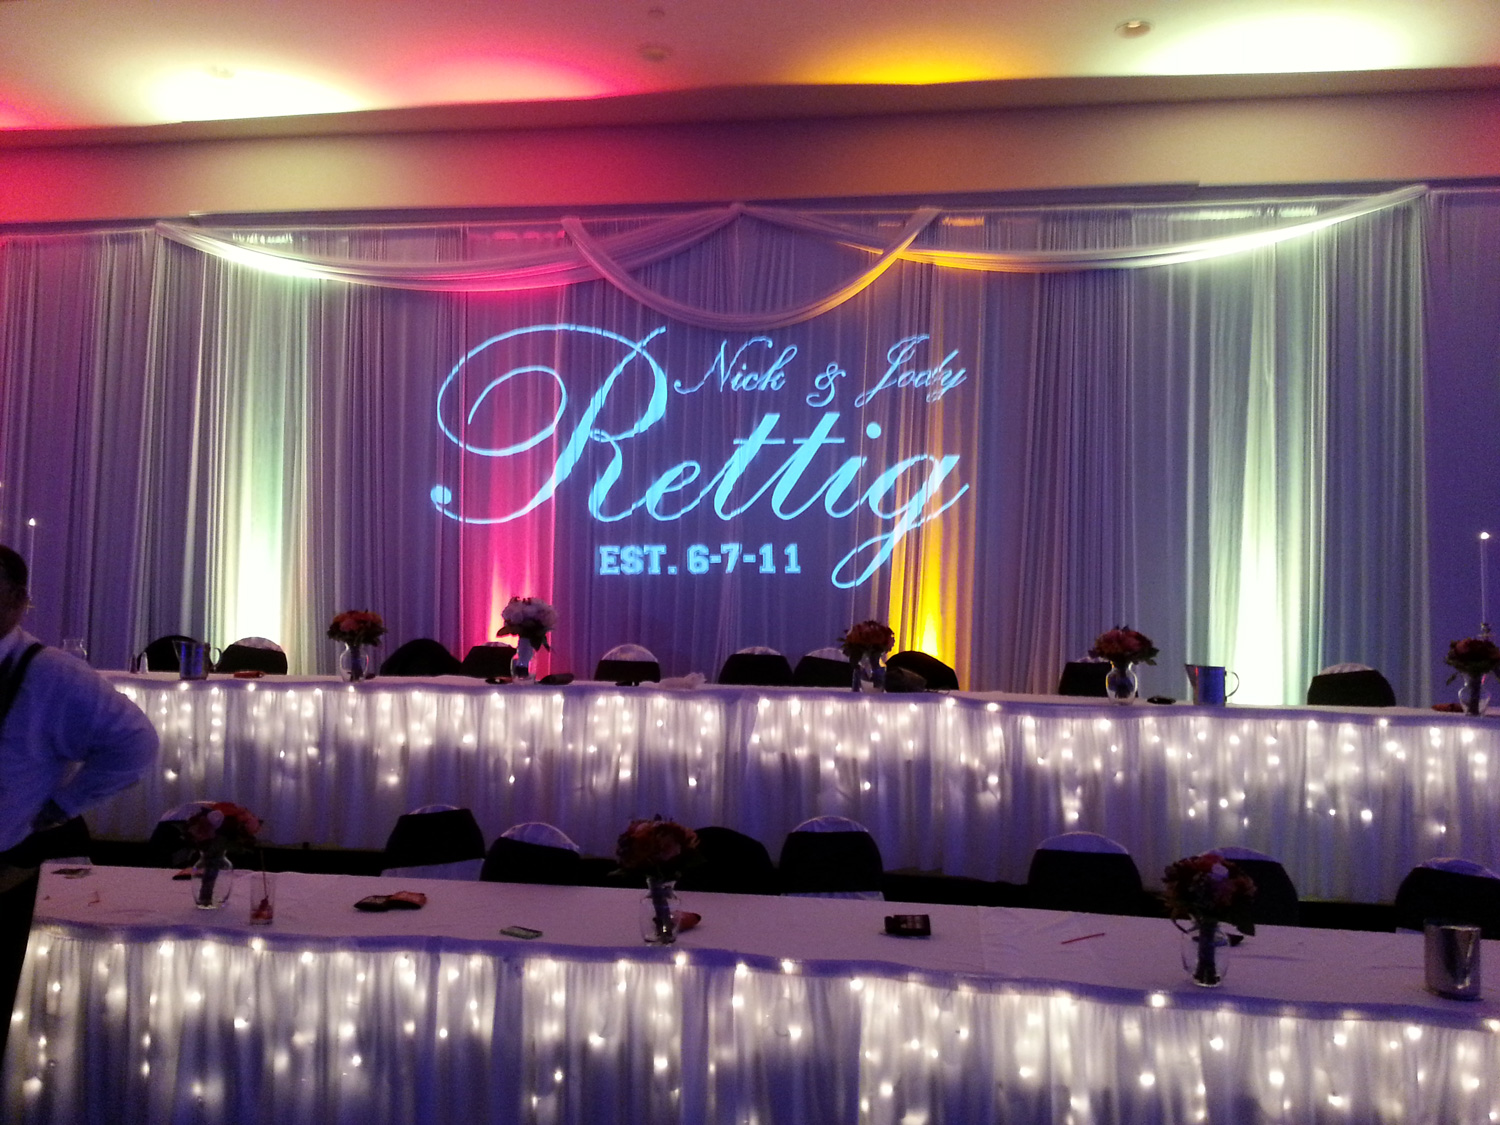 Head table back drop